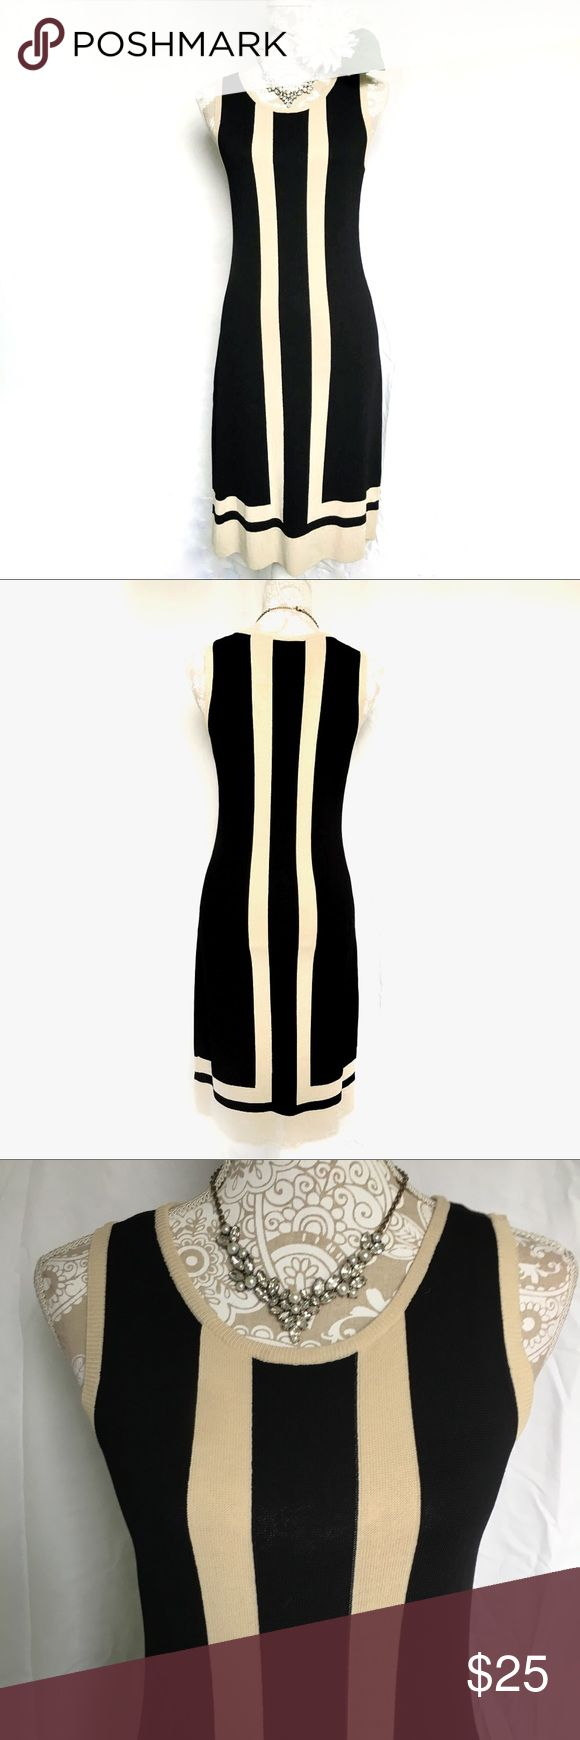 Tan Striped Black Sleeveless Sweater Dress Great for work, career wear dress. Medium weight sweater material. Black dress with tan stripes and trim. Fitted shape and modest length. In excellent condition. Not sure what this brand is but if you know, please feel free to tell me. Dresses Midi